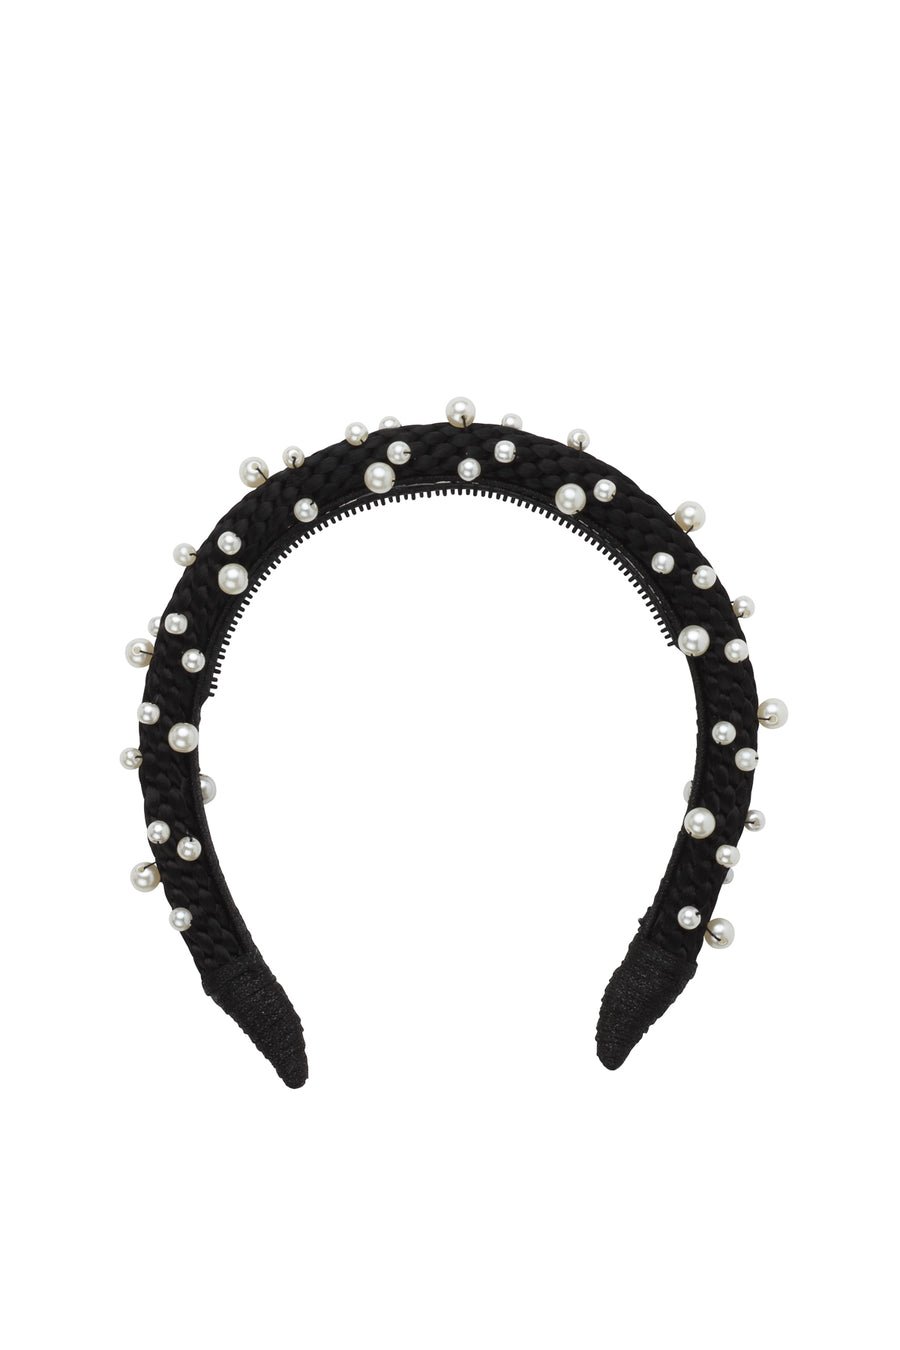 Pearl Queen Women's Headband - Black